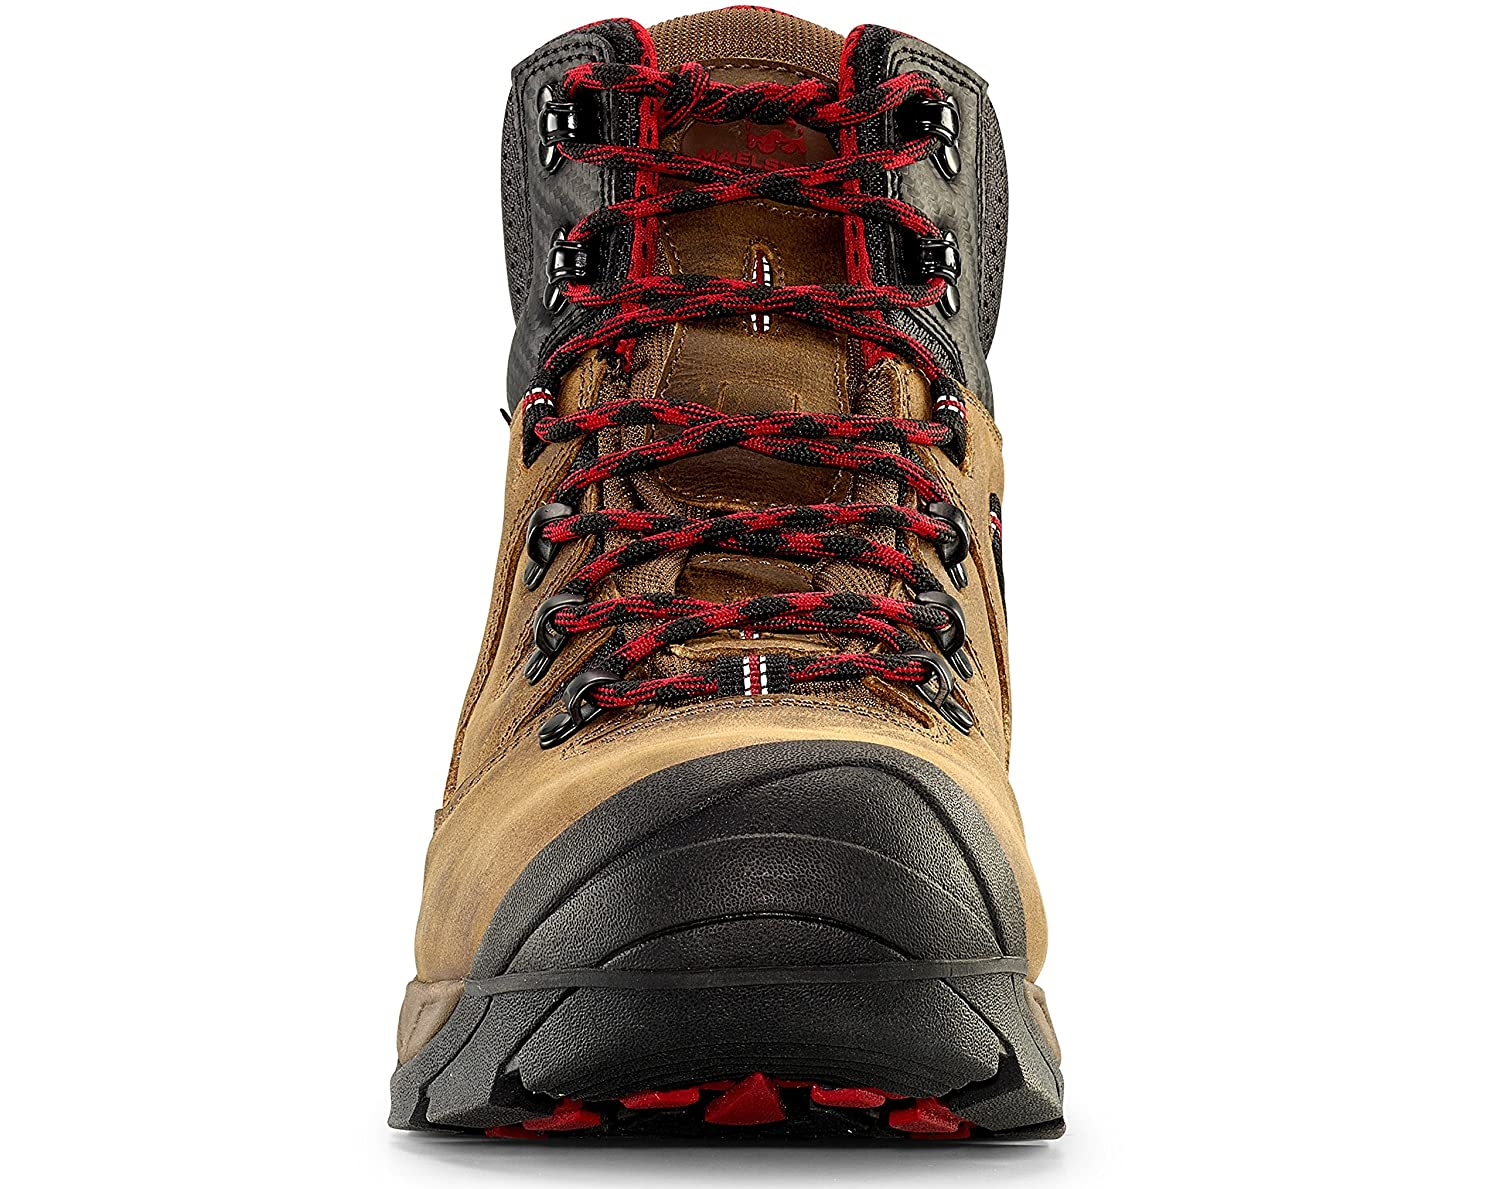 Maelstrom Mens Waterproof Work Boots for Industrial Construction Utility Outdoors